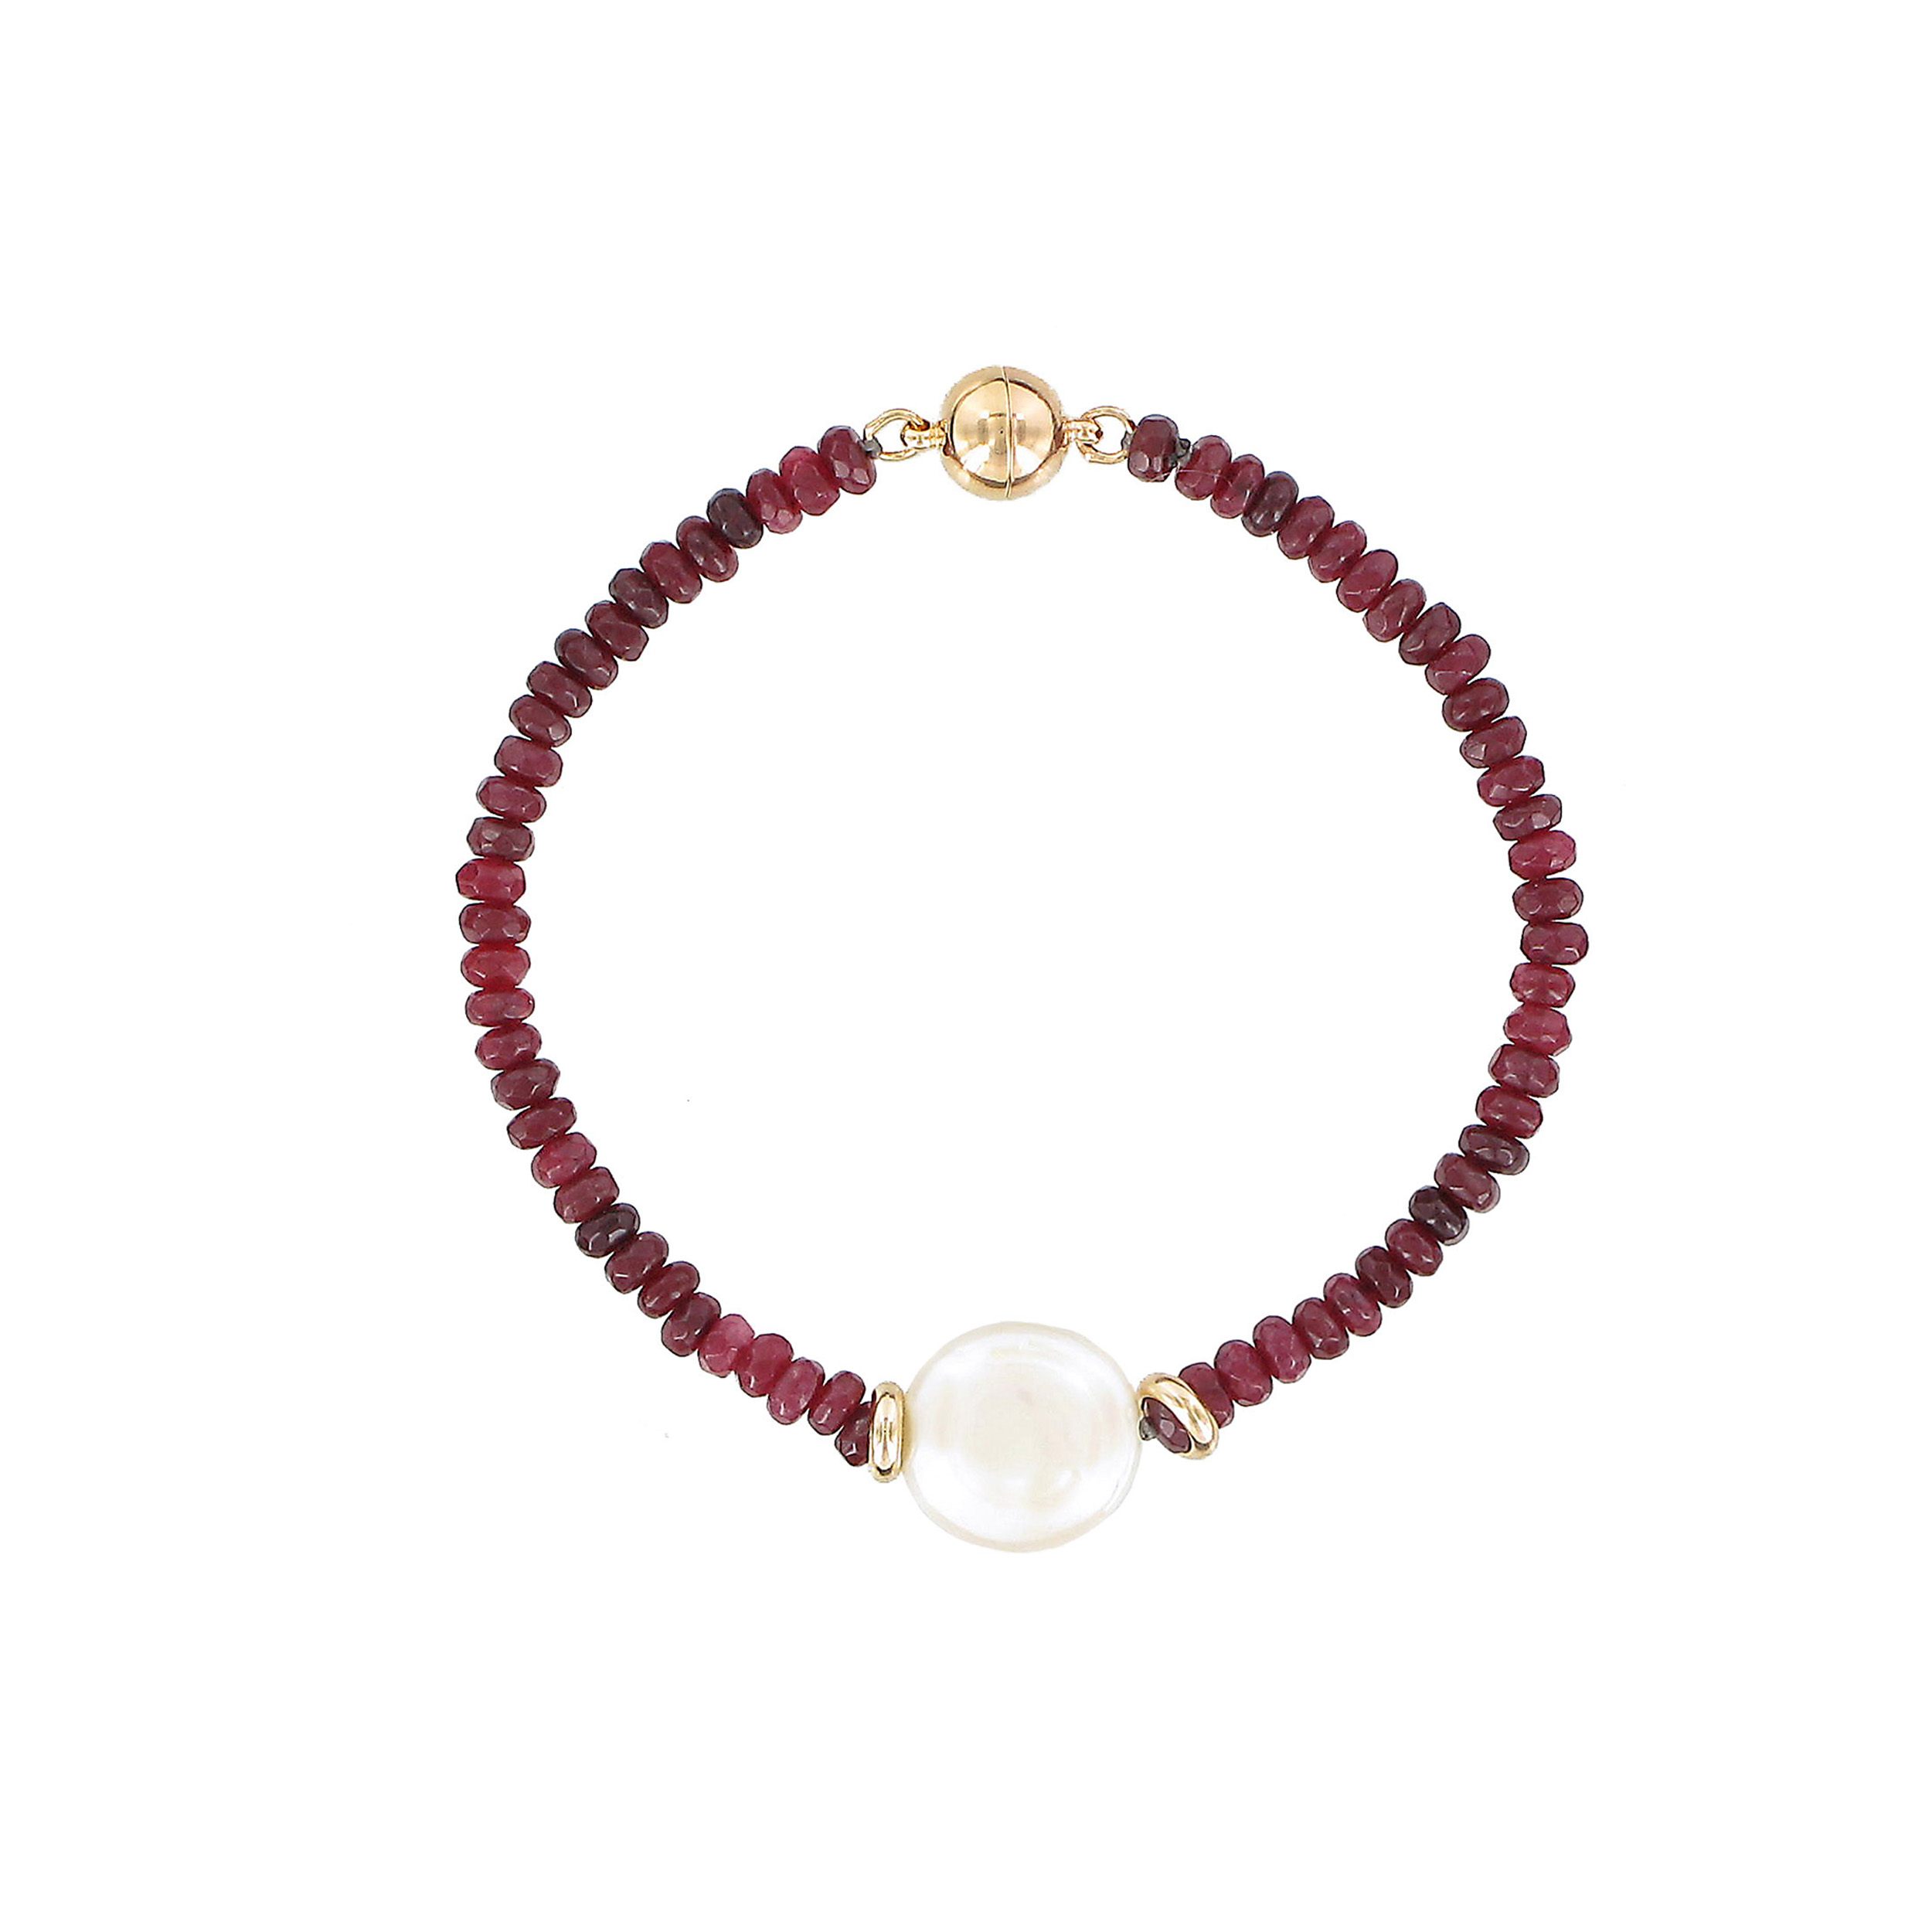 Red jade, pearl and white coin bracelet